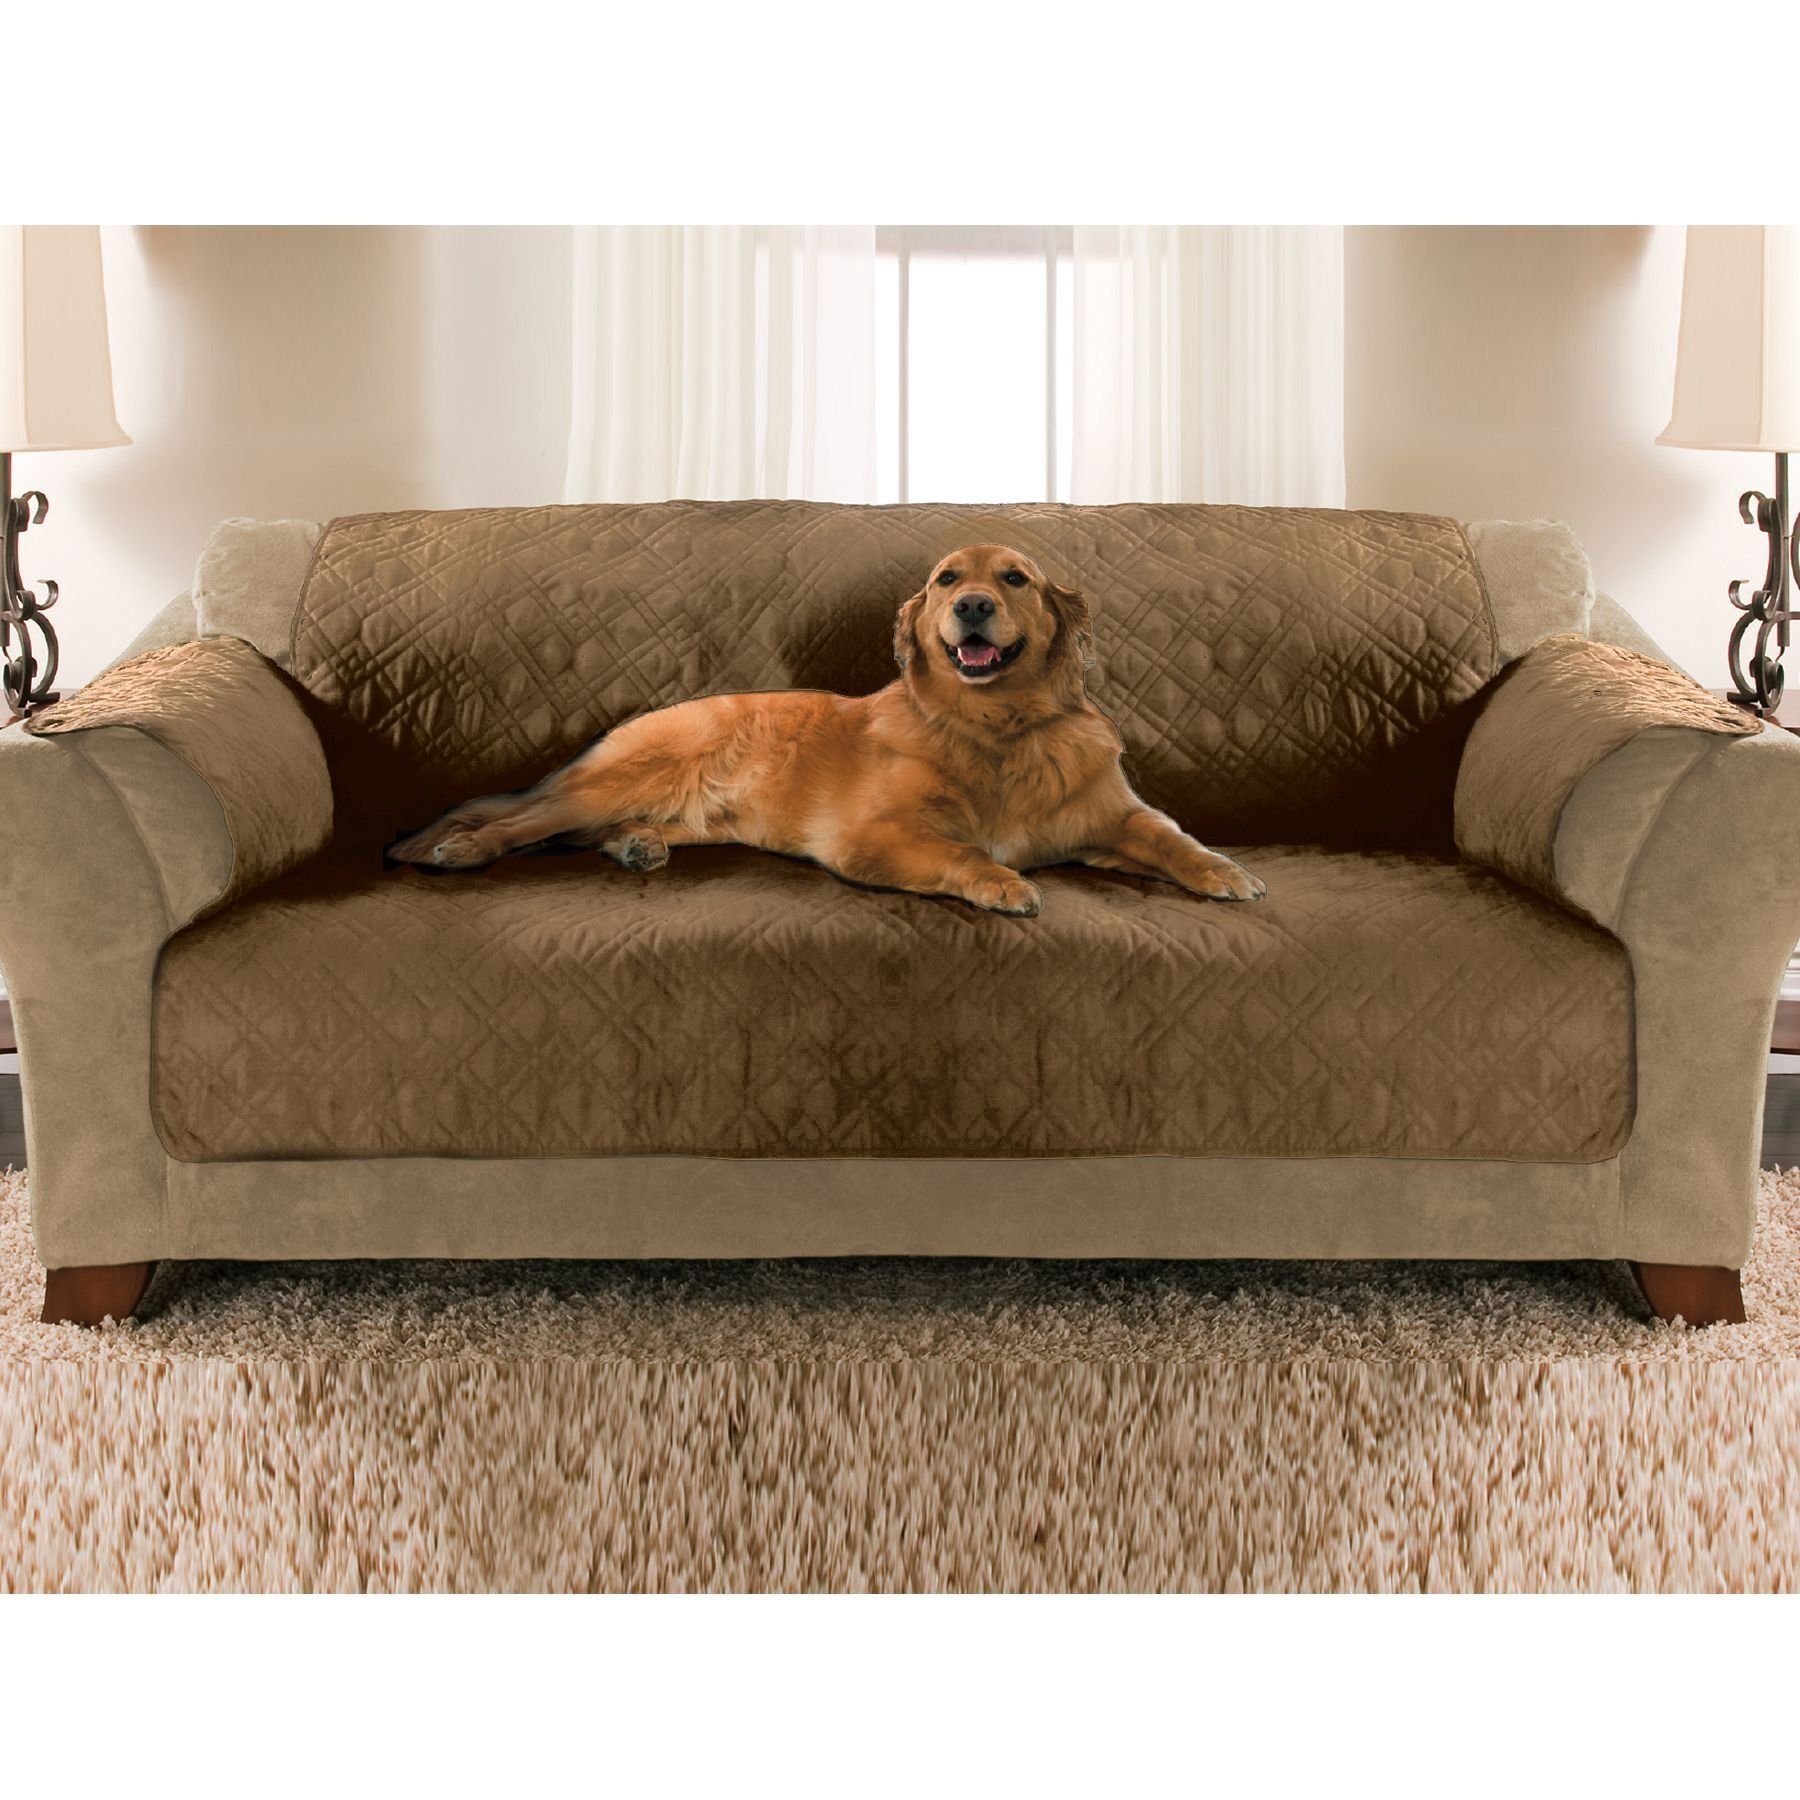 Essential Home Sofa Pet Cover Tan, Beige & Tan